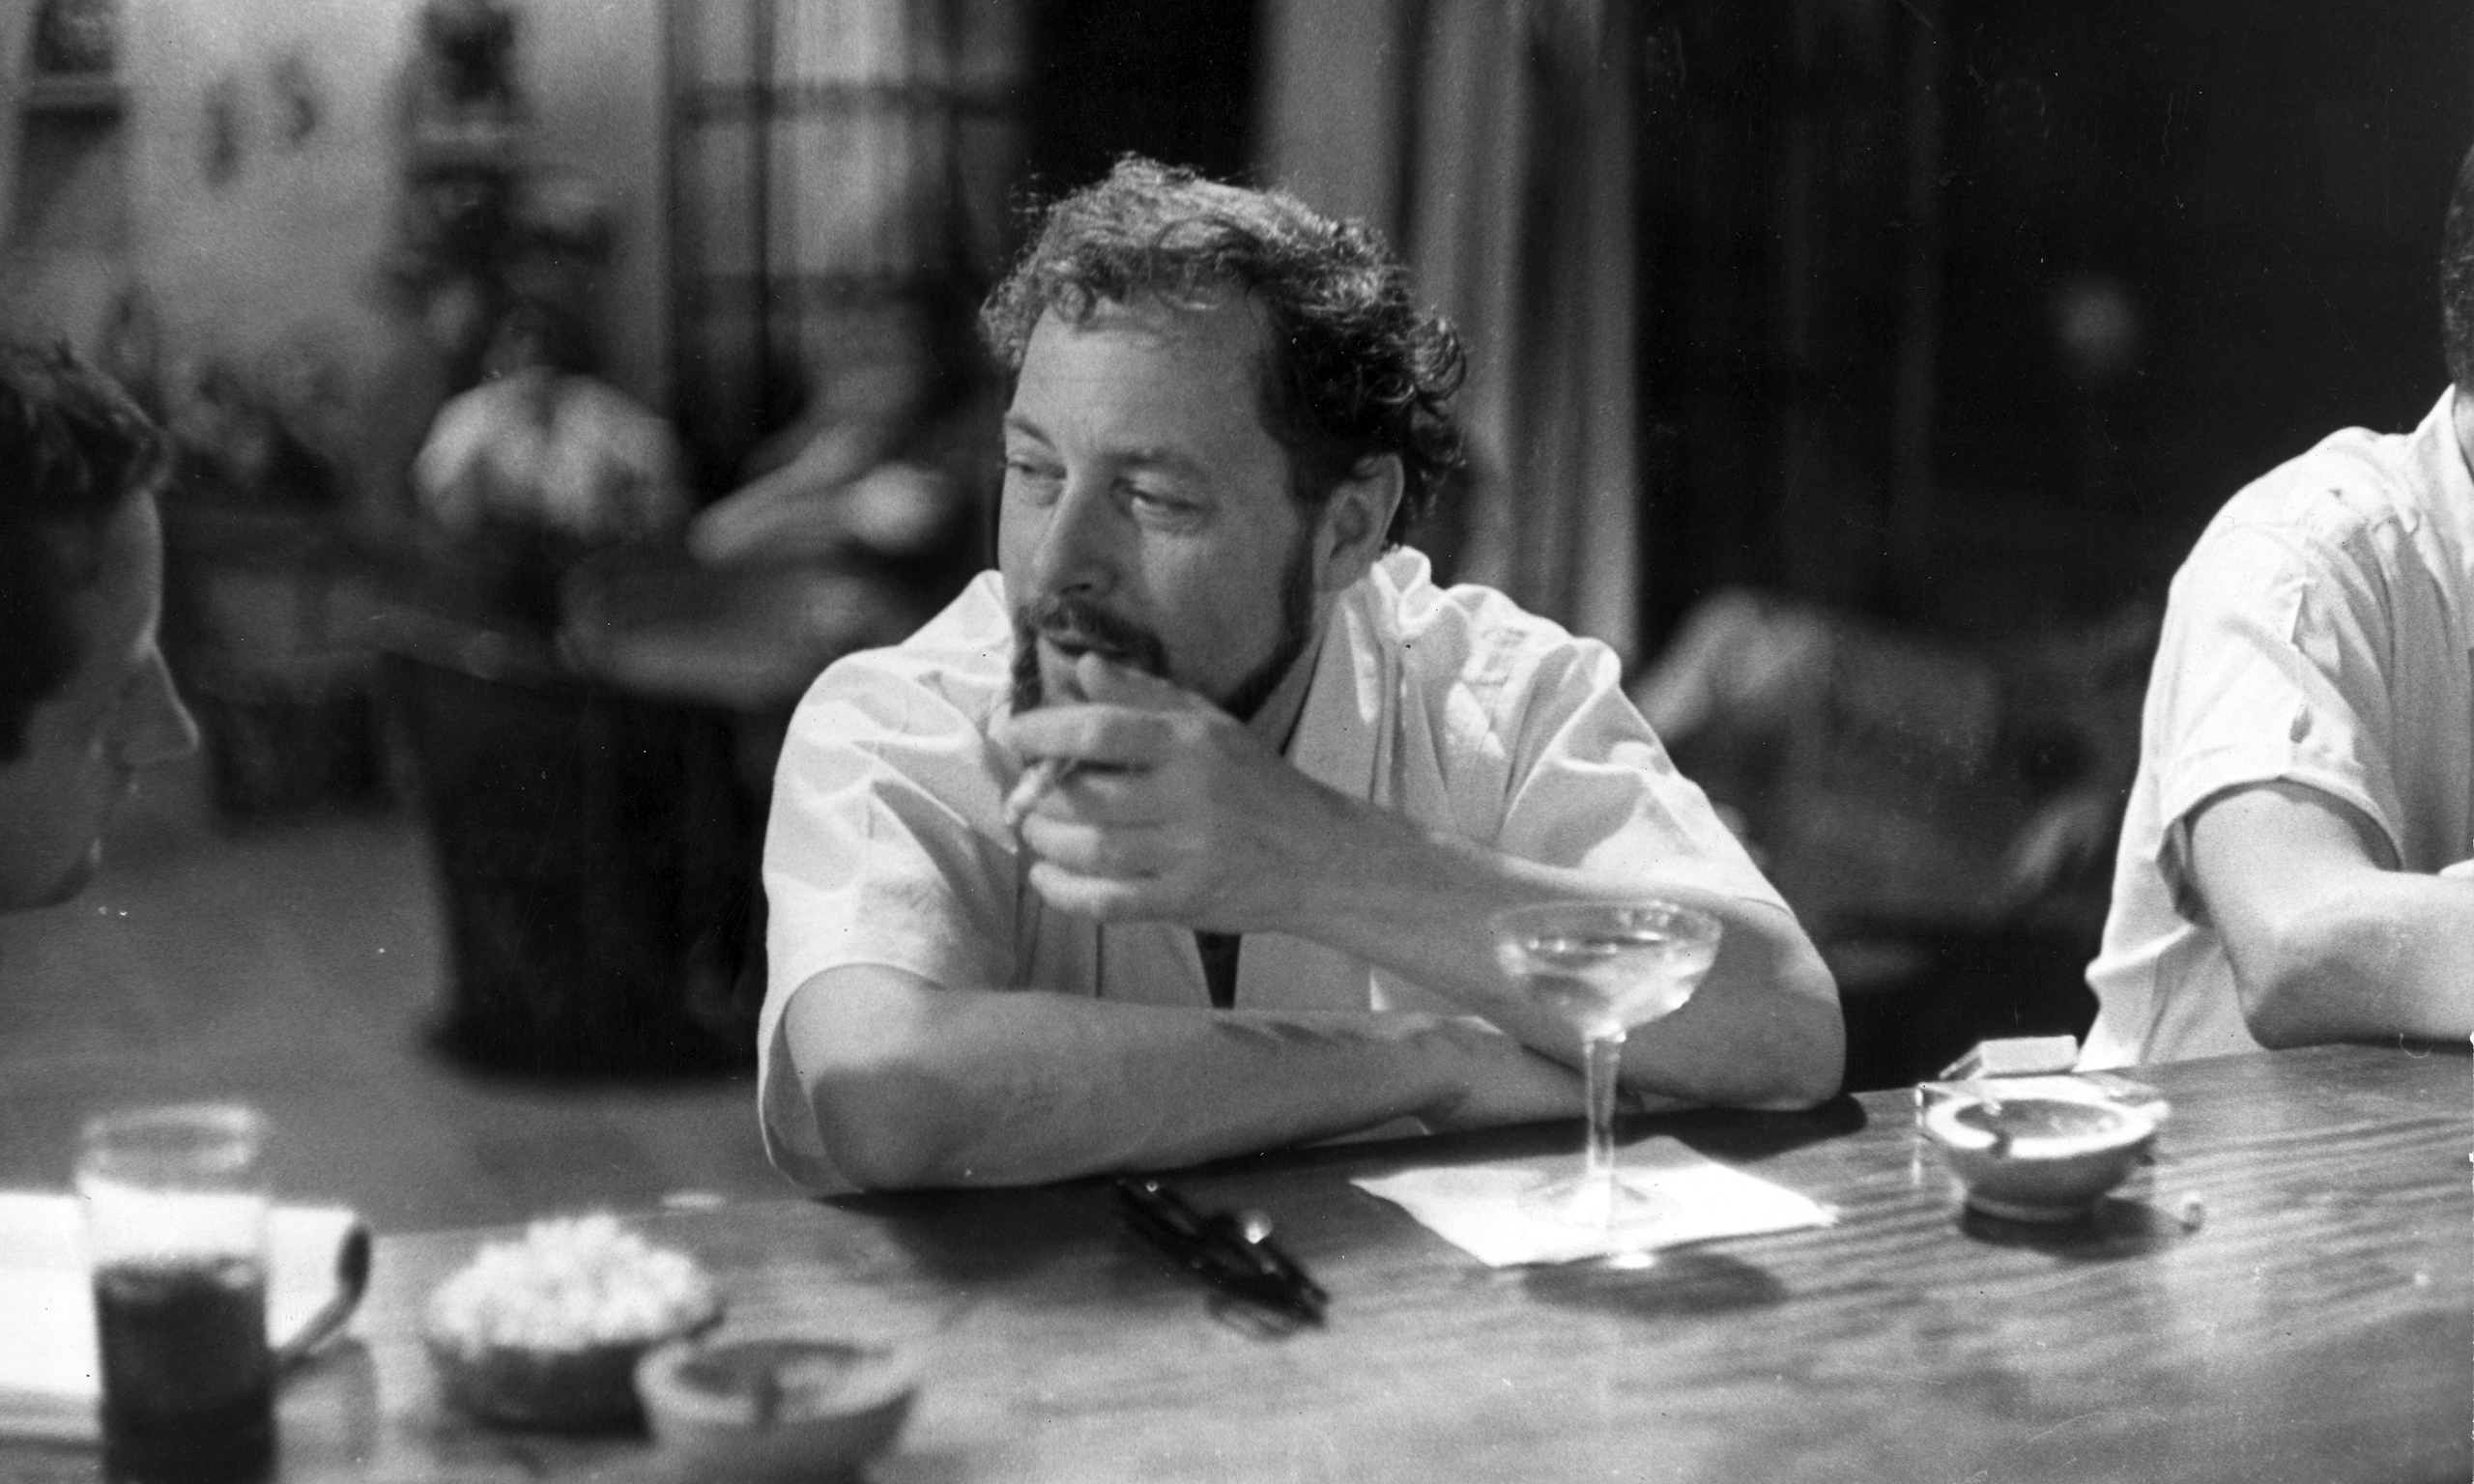 a review of tennessee williams the outcast The williams family had produced several illustrious politicians in the state of tennessee, but williams's grandfather had squandered the family fortune williams's father, cc williams, was a traveling salesman and a heavy drinker.